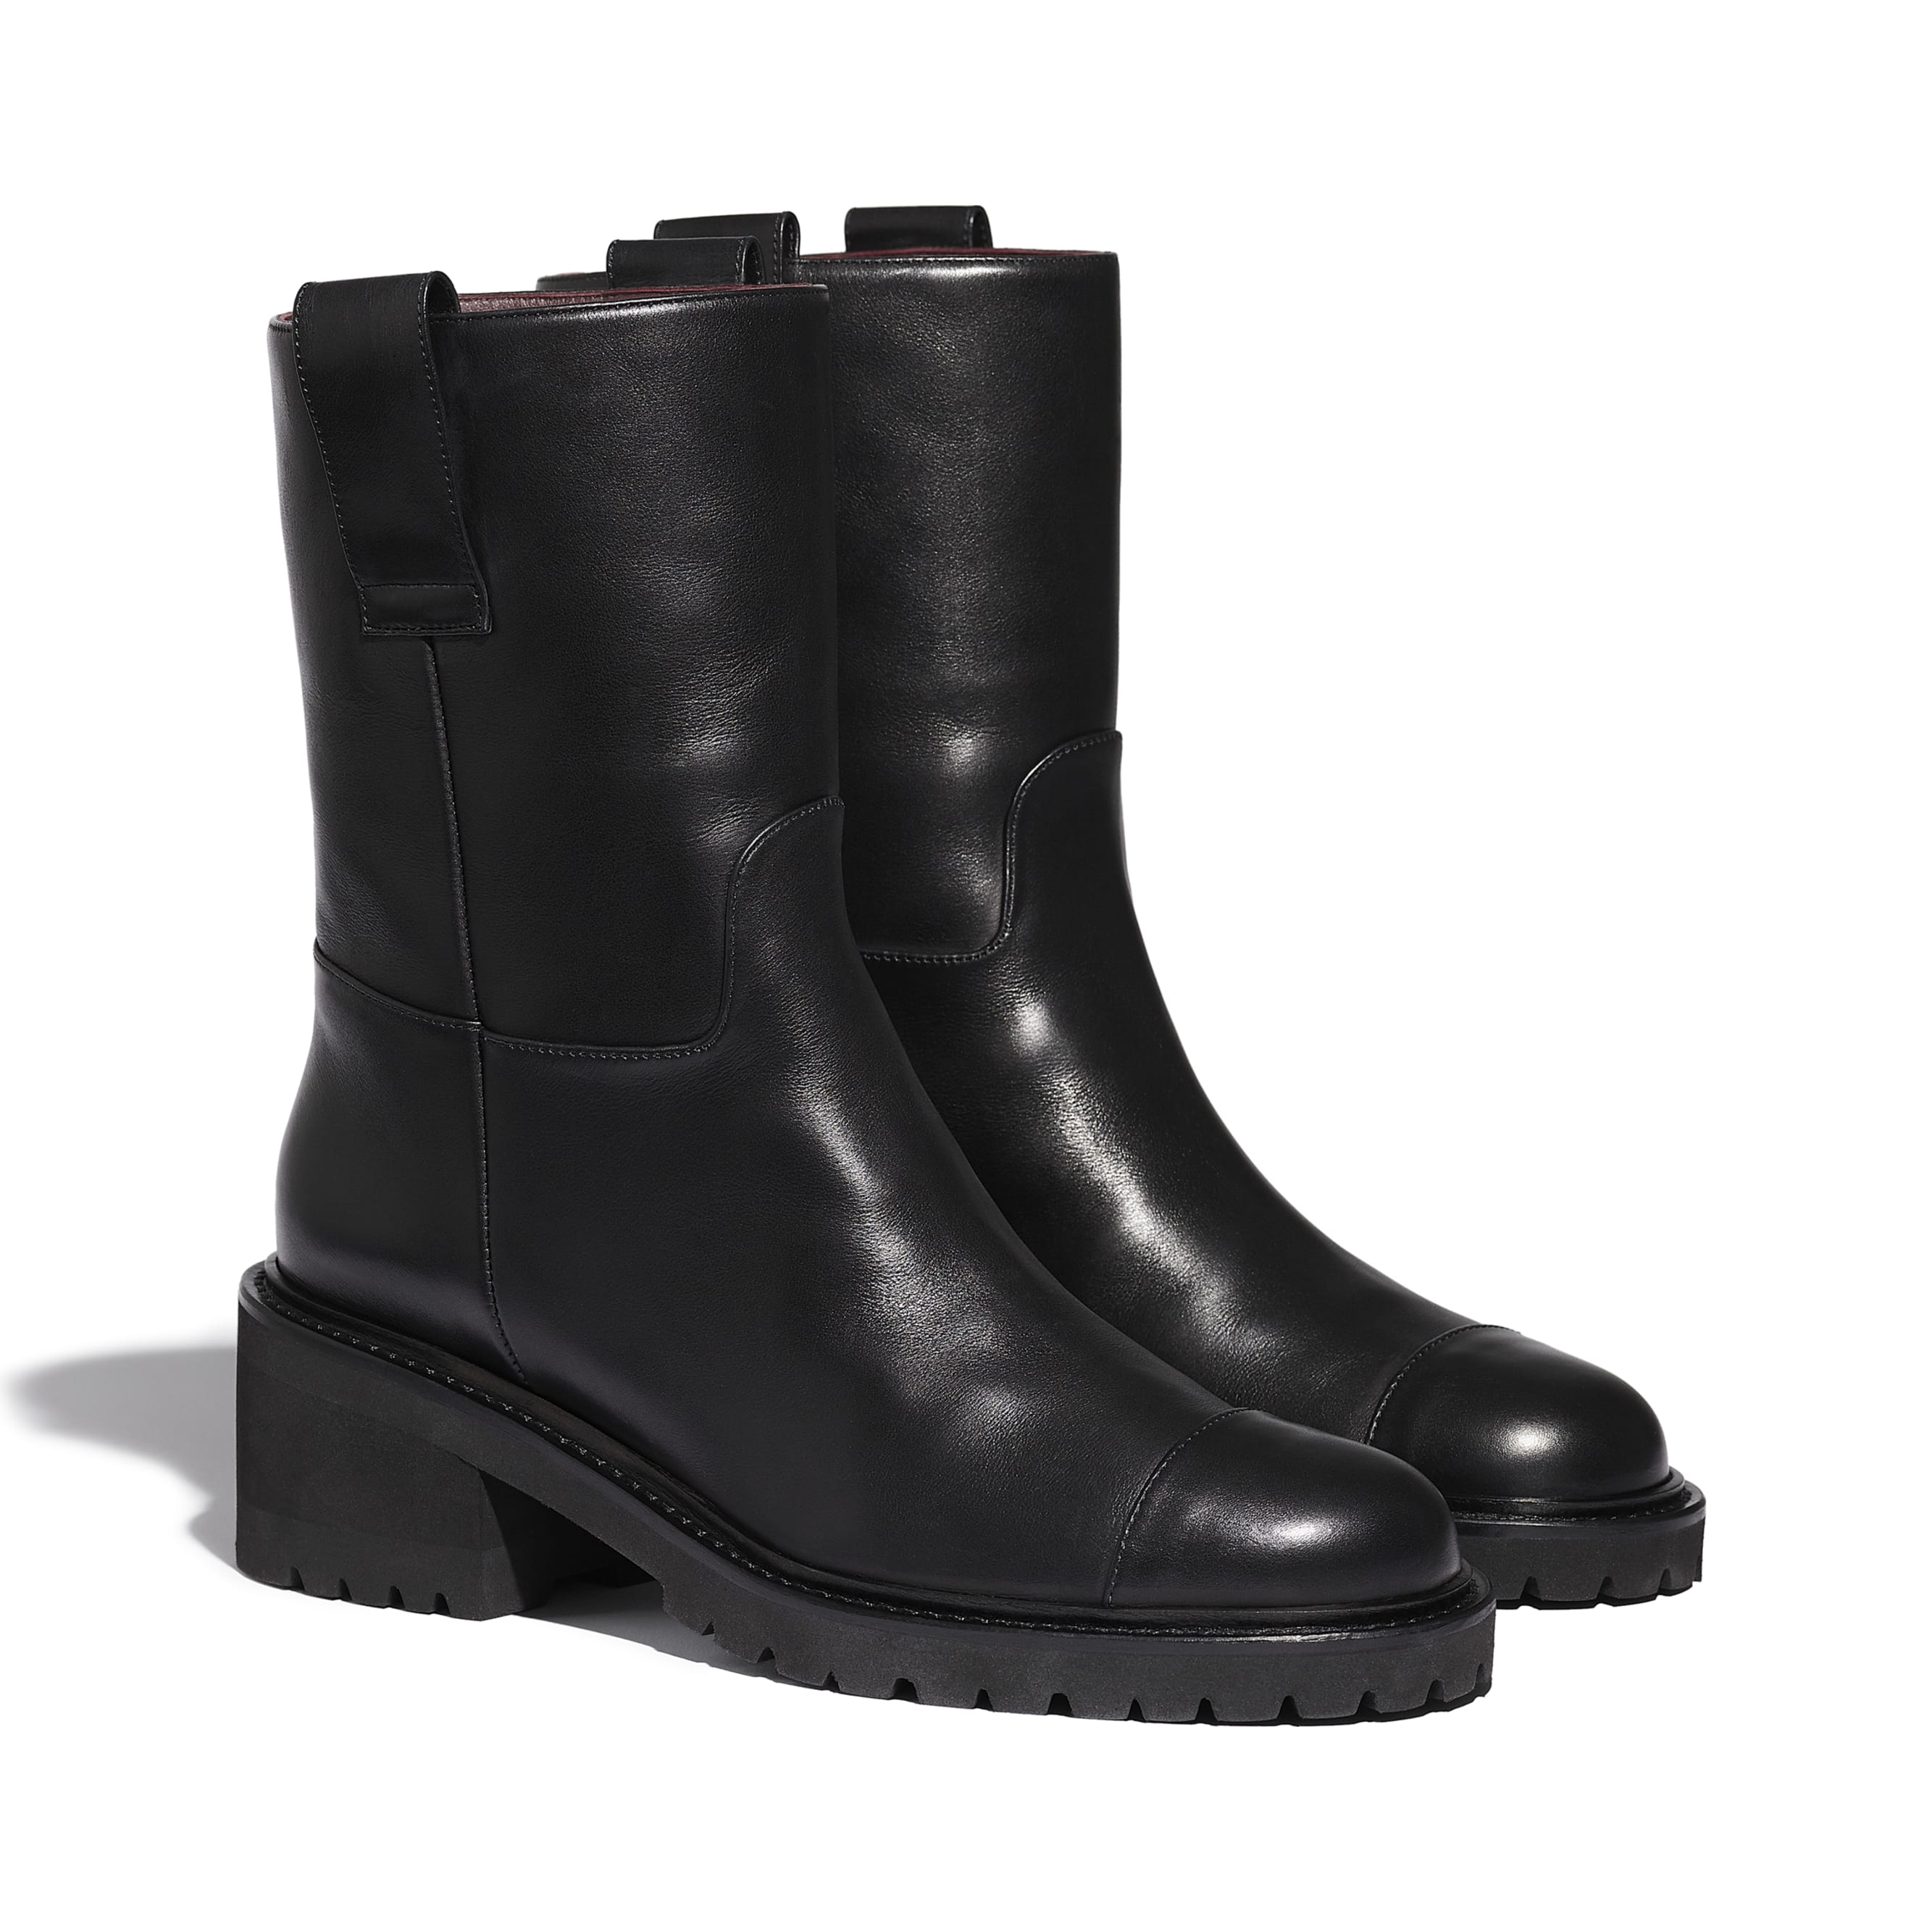 Ankle Boots - Black - Calfskin - CHANEL - Alternative view - see standard sized version